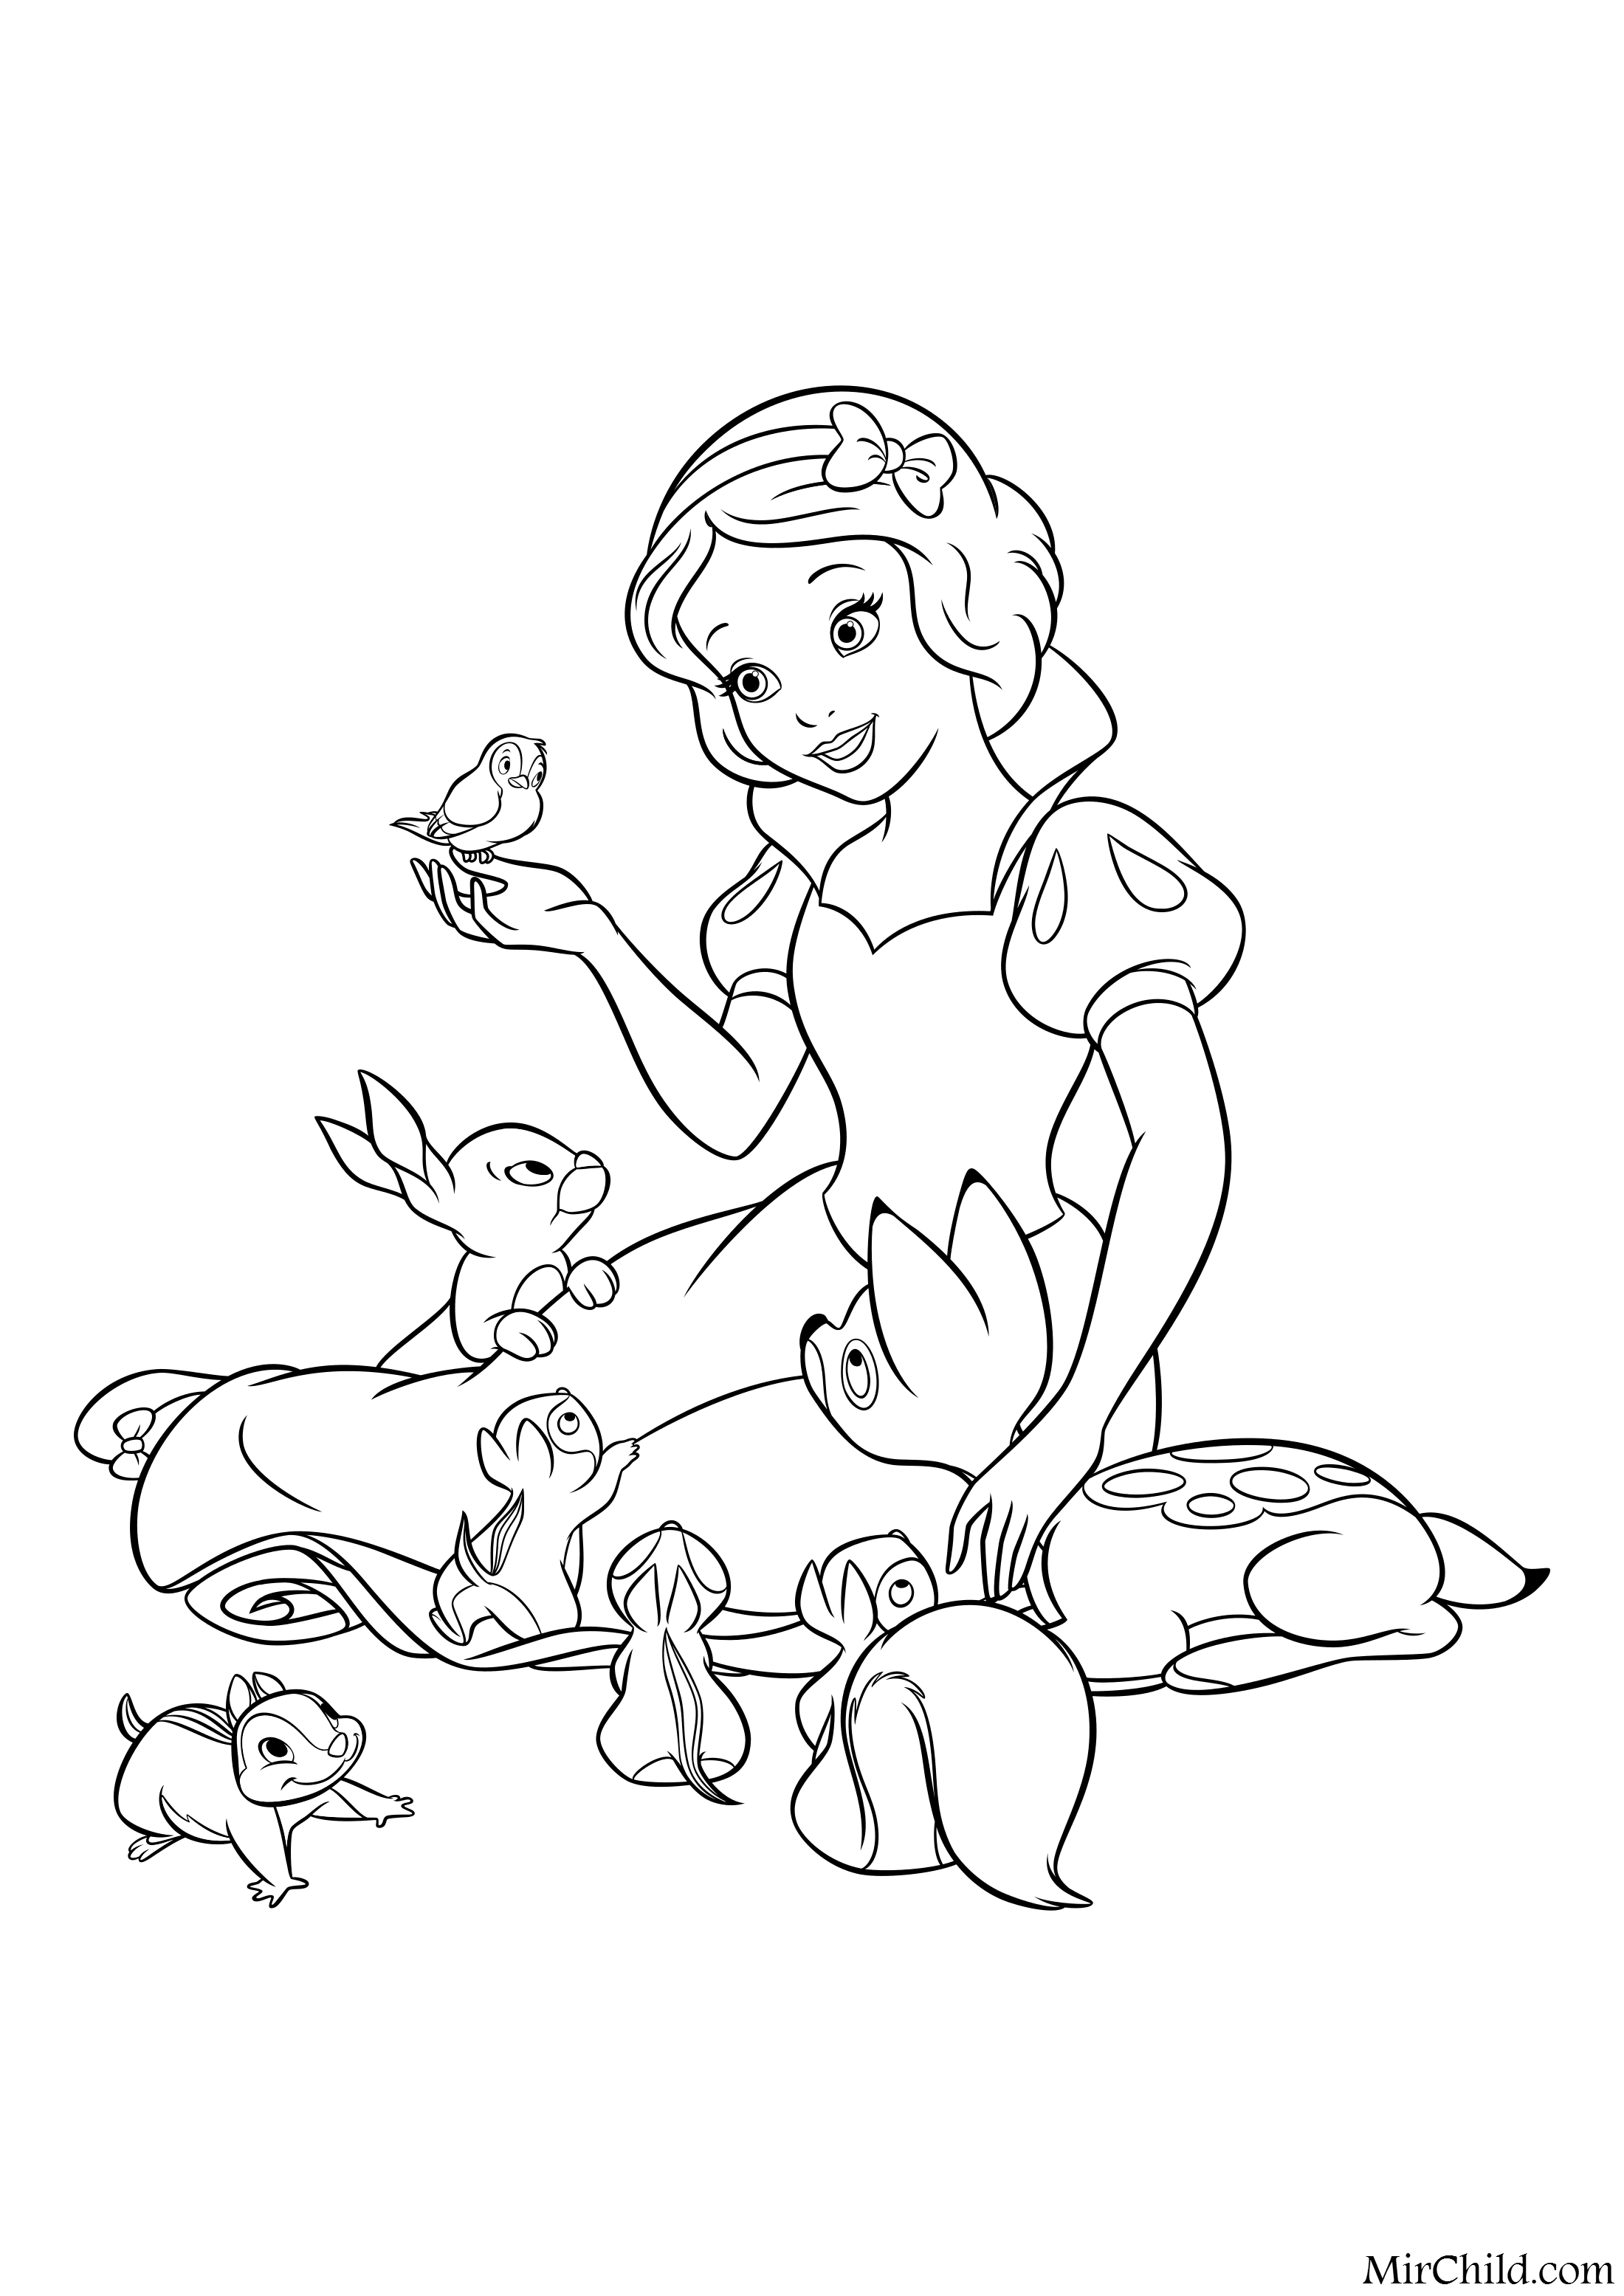 Pin By Nora Demeter On Art Cool Coloring Pages Disney Coloring Pages Painting Patterns